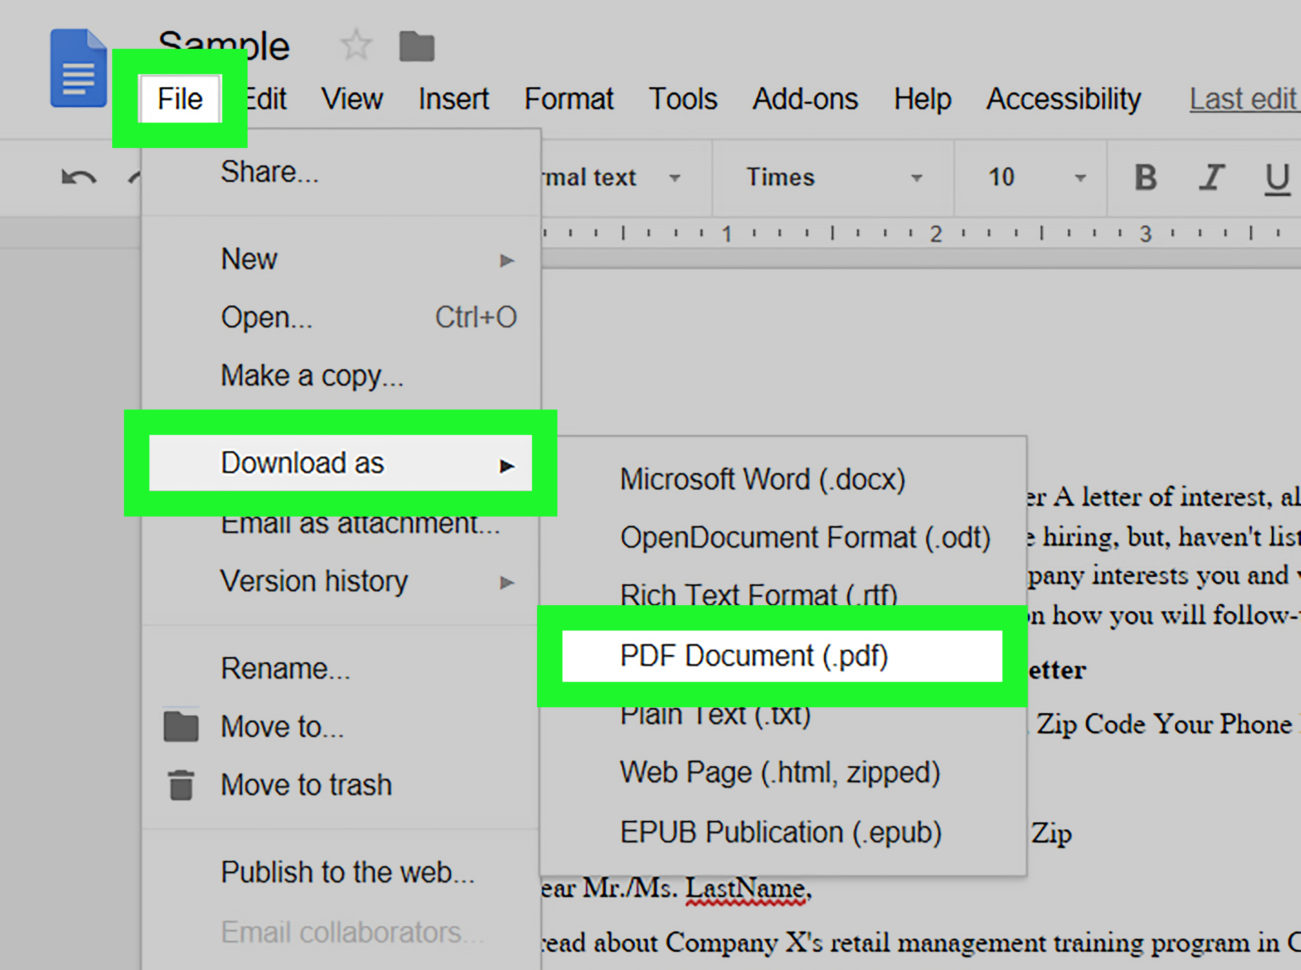 Convert Excel Spreadsheet To Fillable Pdf Inside How To Make Pdfs Editable With Google Docs: 11 Steps